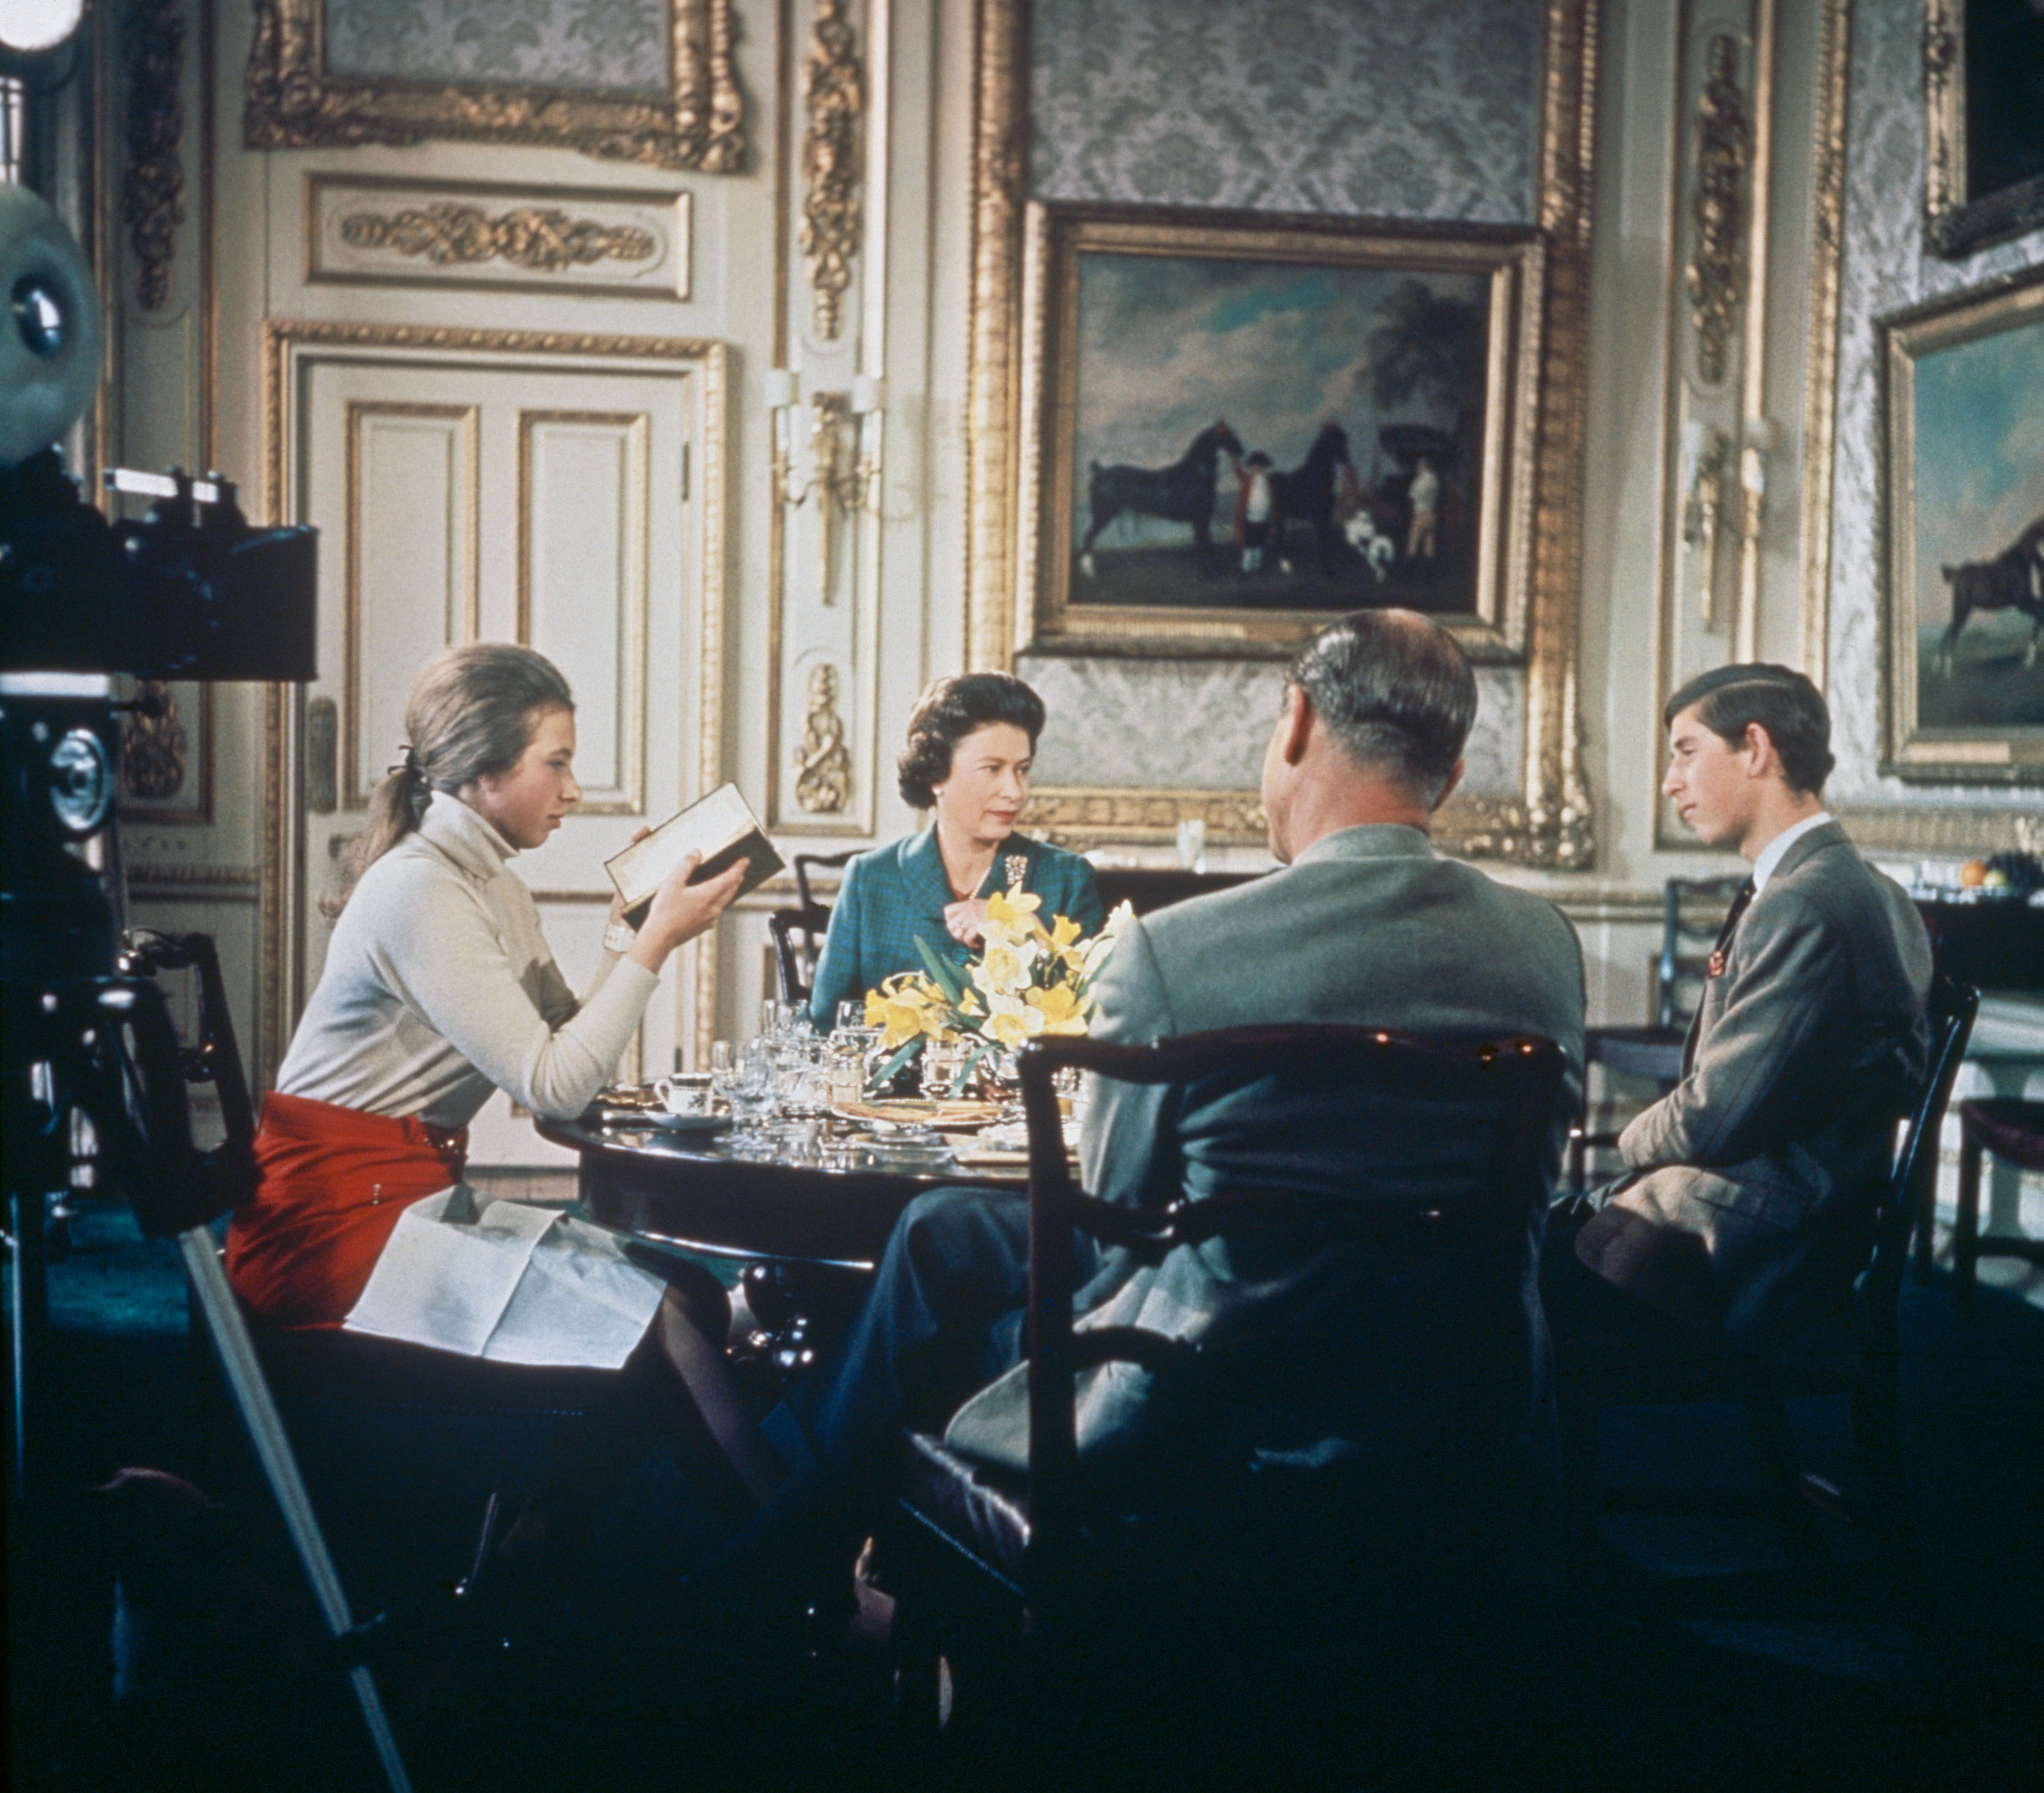 You Can't Watch the Royal Family's 1969 Documentary—but There Are Photos and Short Clips